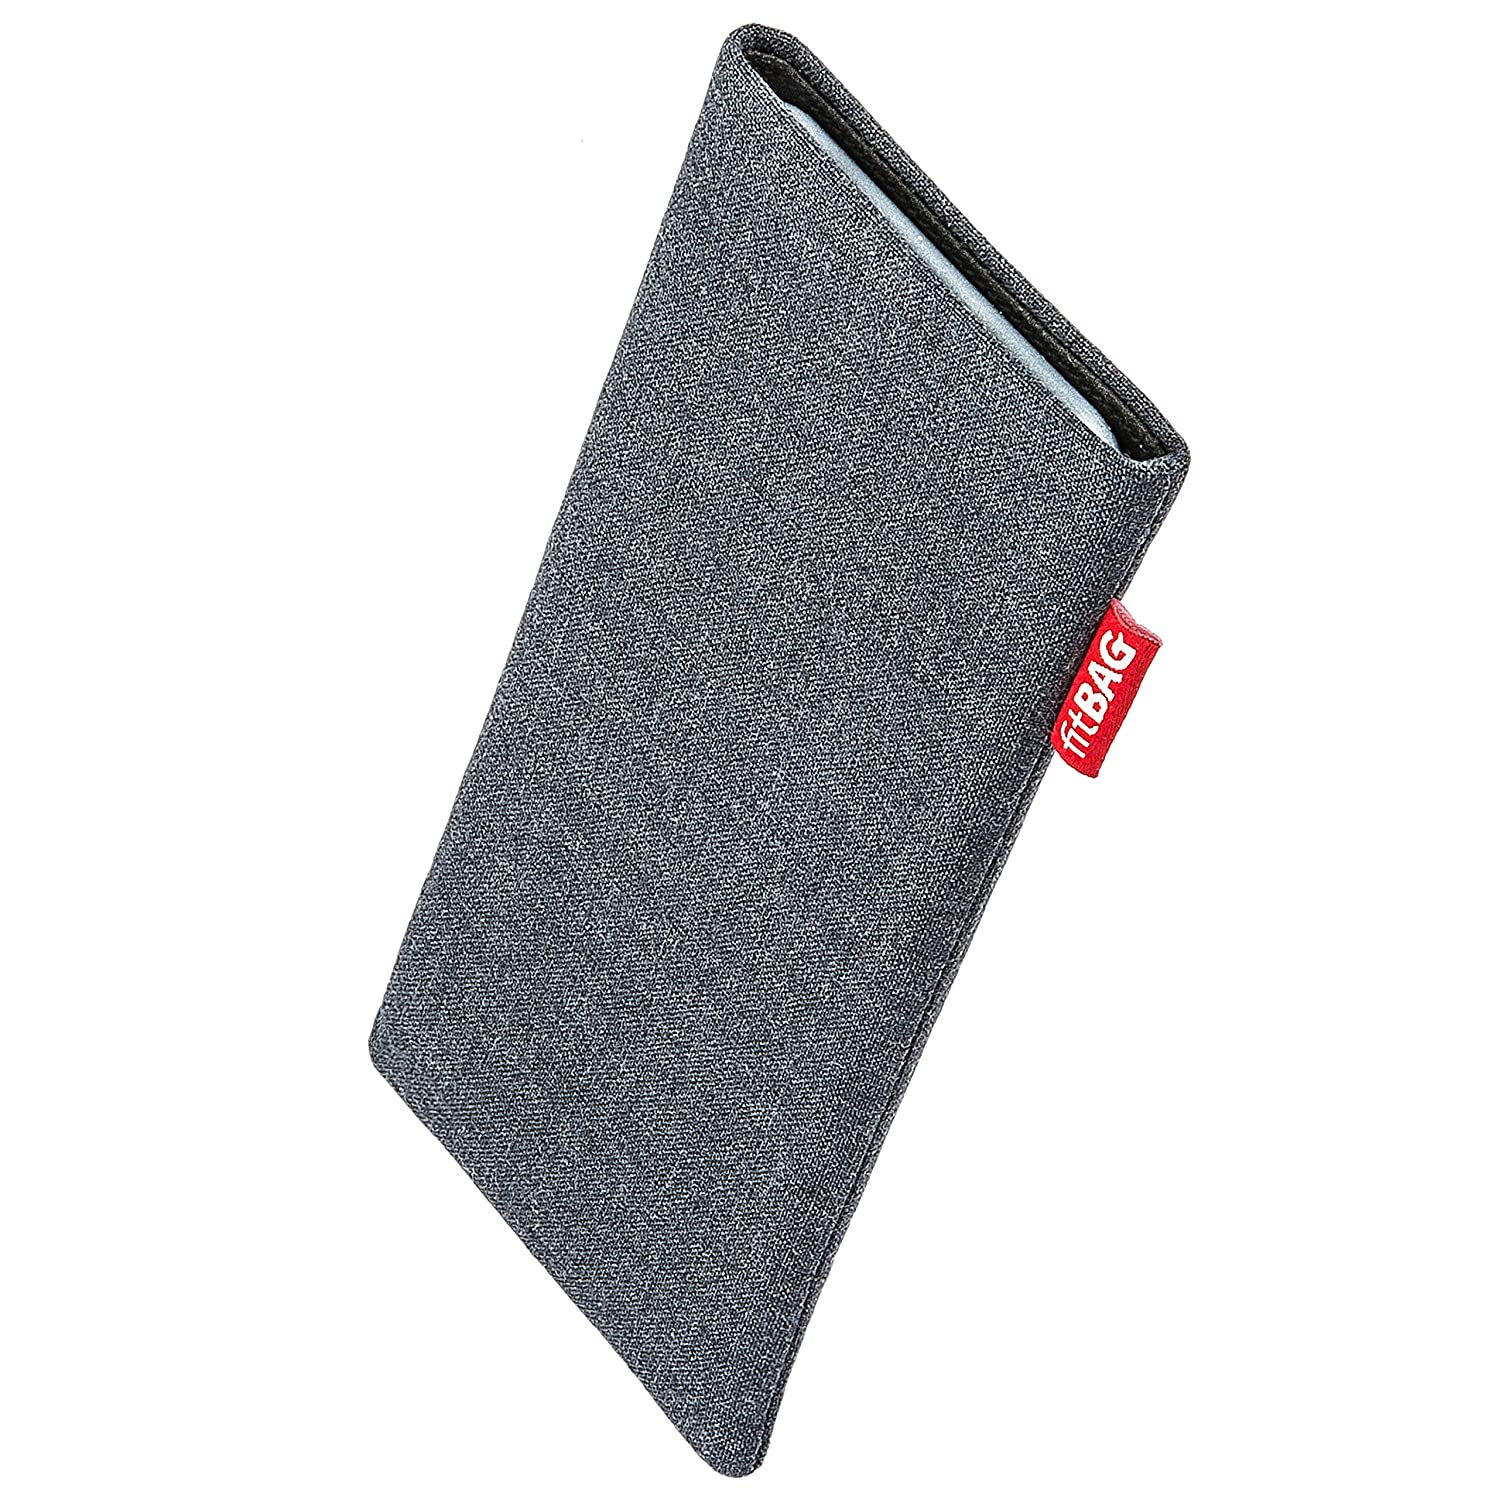 fitBAG Jive Gray Custom Tailored Sleeve for Samsung Galaxy S10+ / S10 Plus (SM-G975F)   Made in Germany   Fine Suit Fabric Pouch case Cover with Microfibre Lining for Display Cleaning